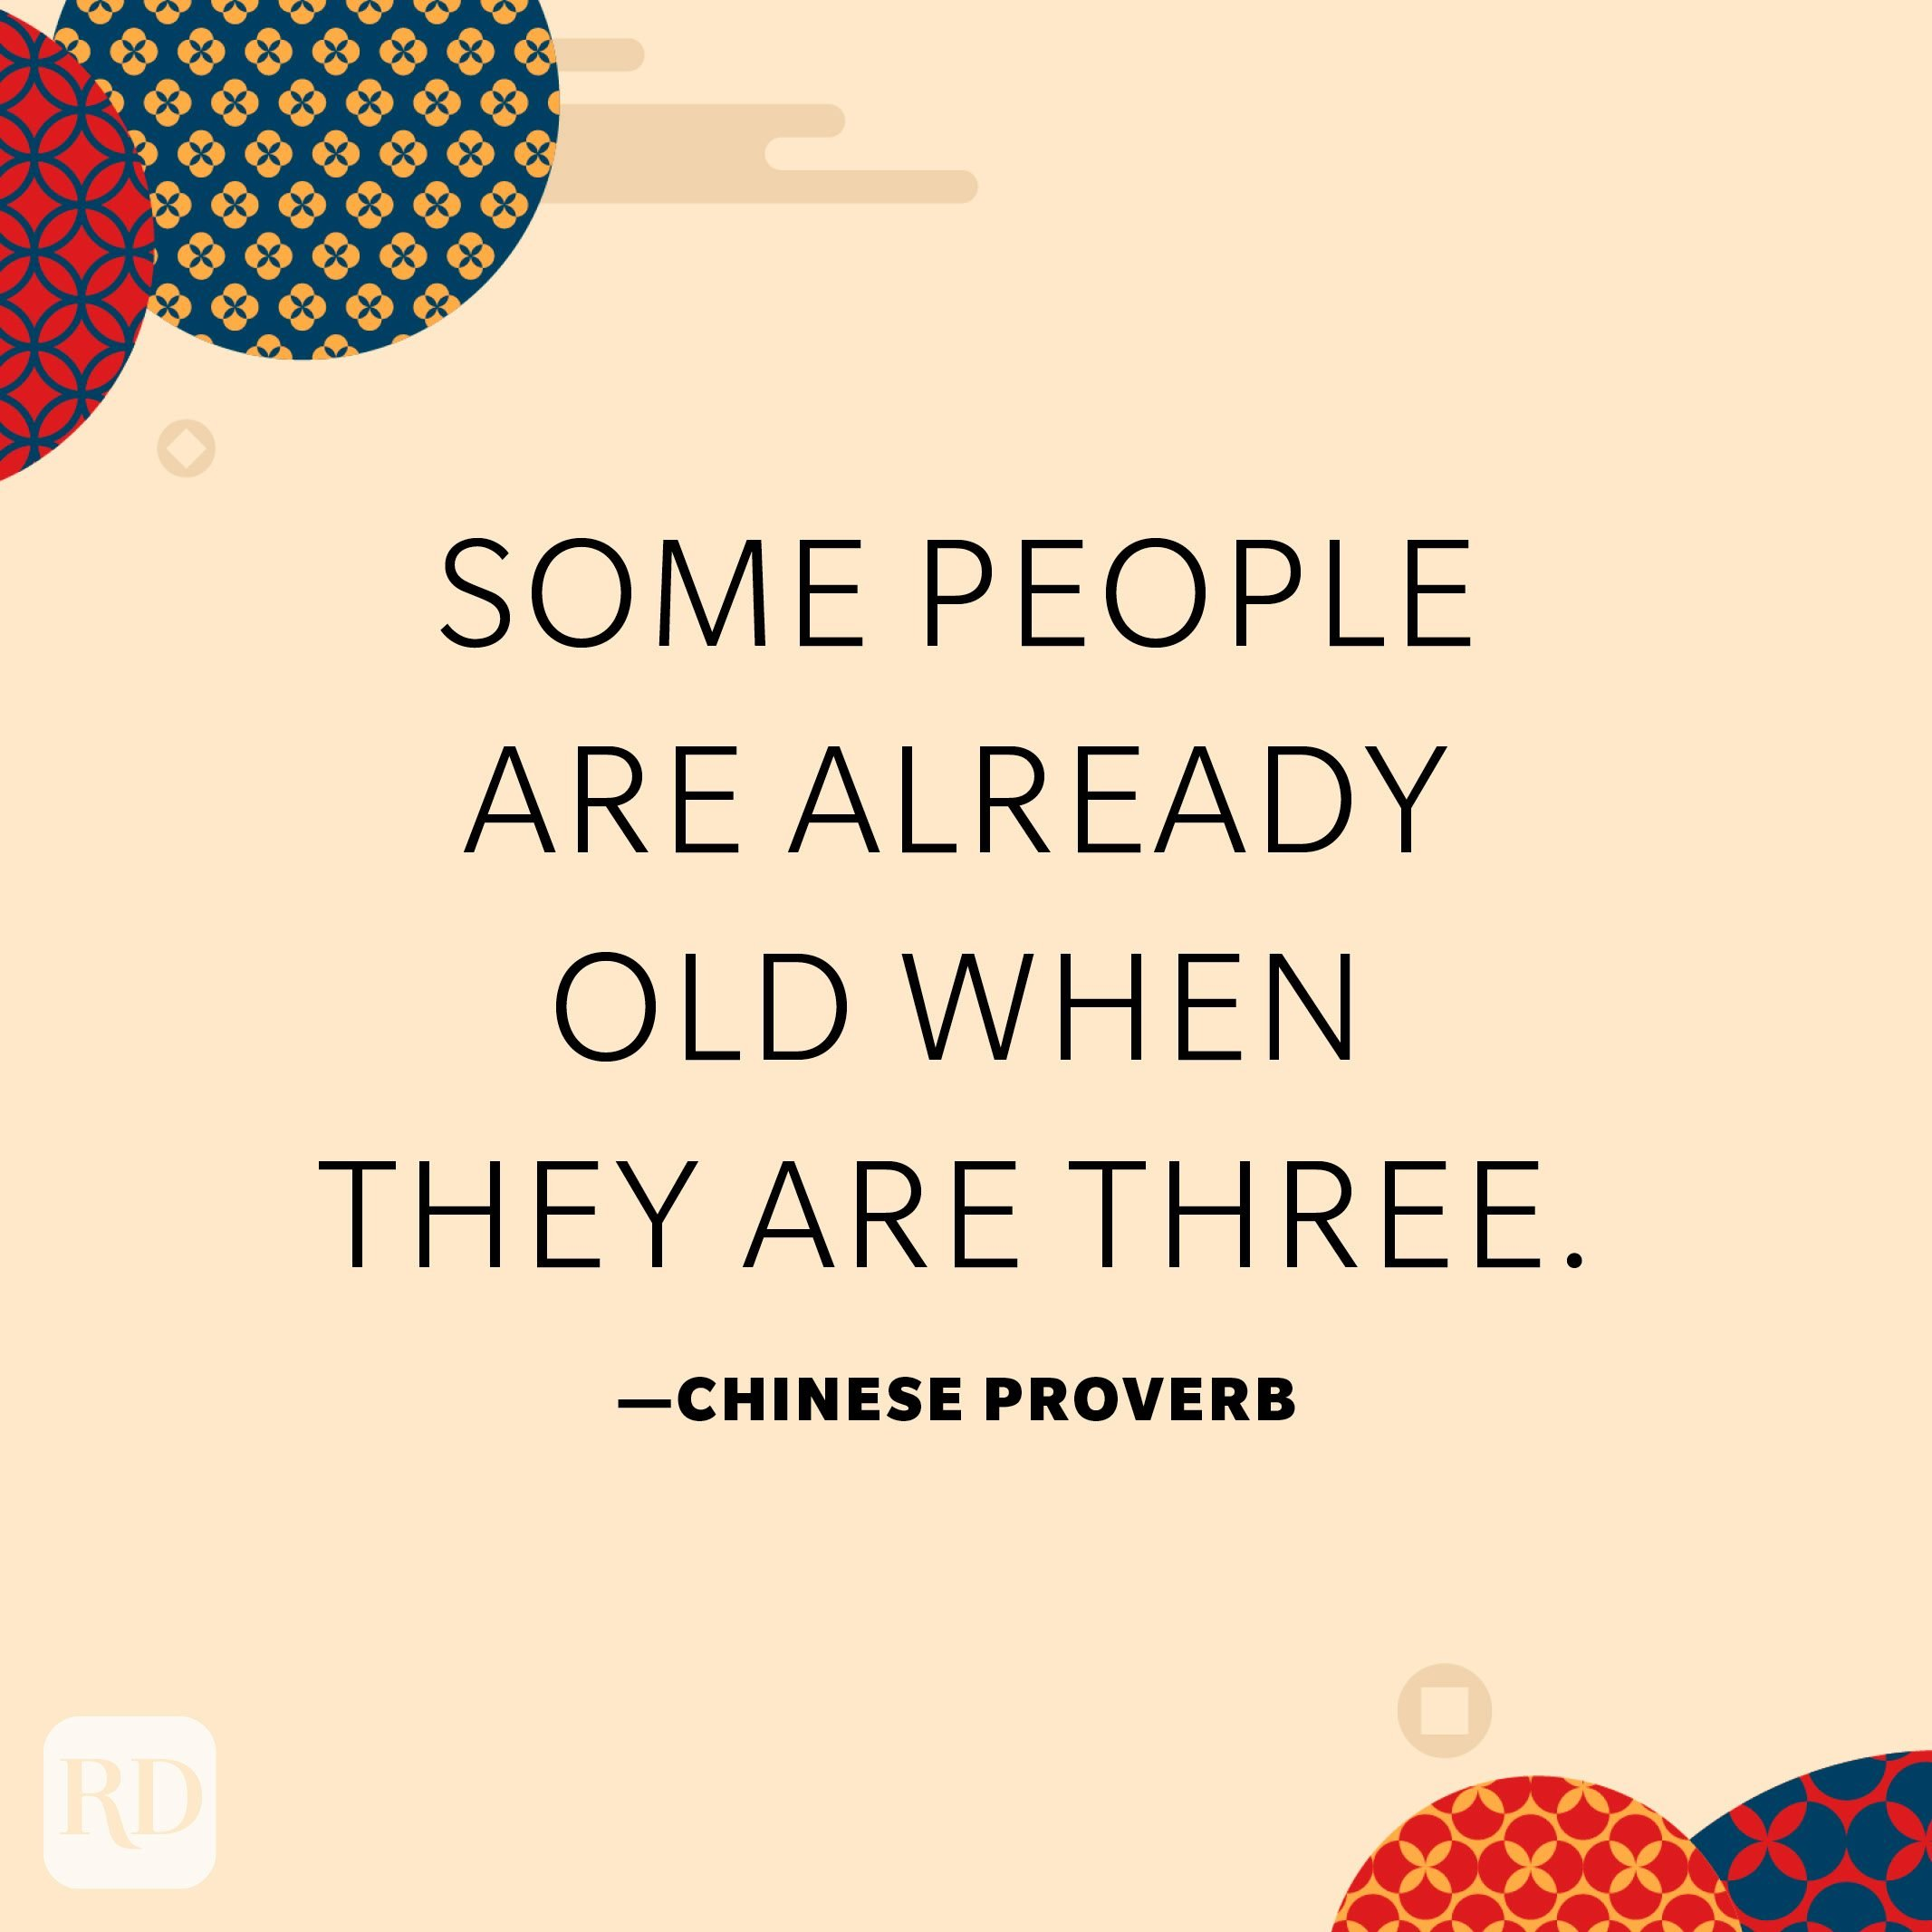 Some people are already old when they are three.